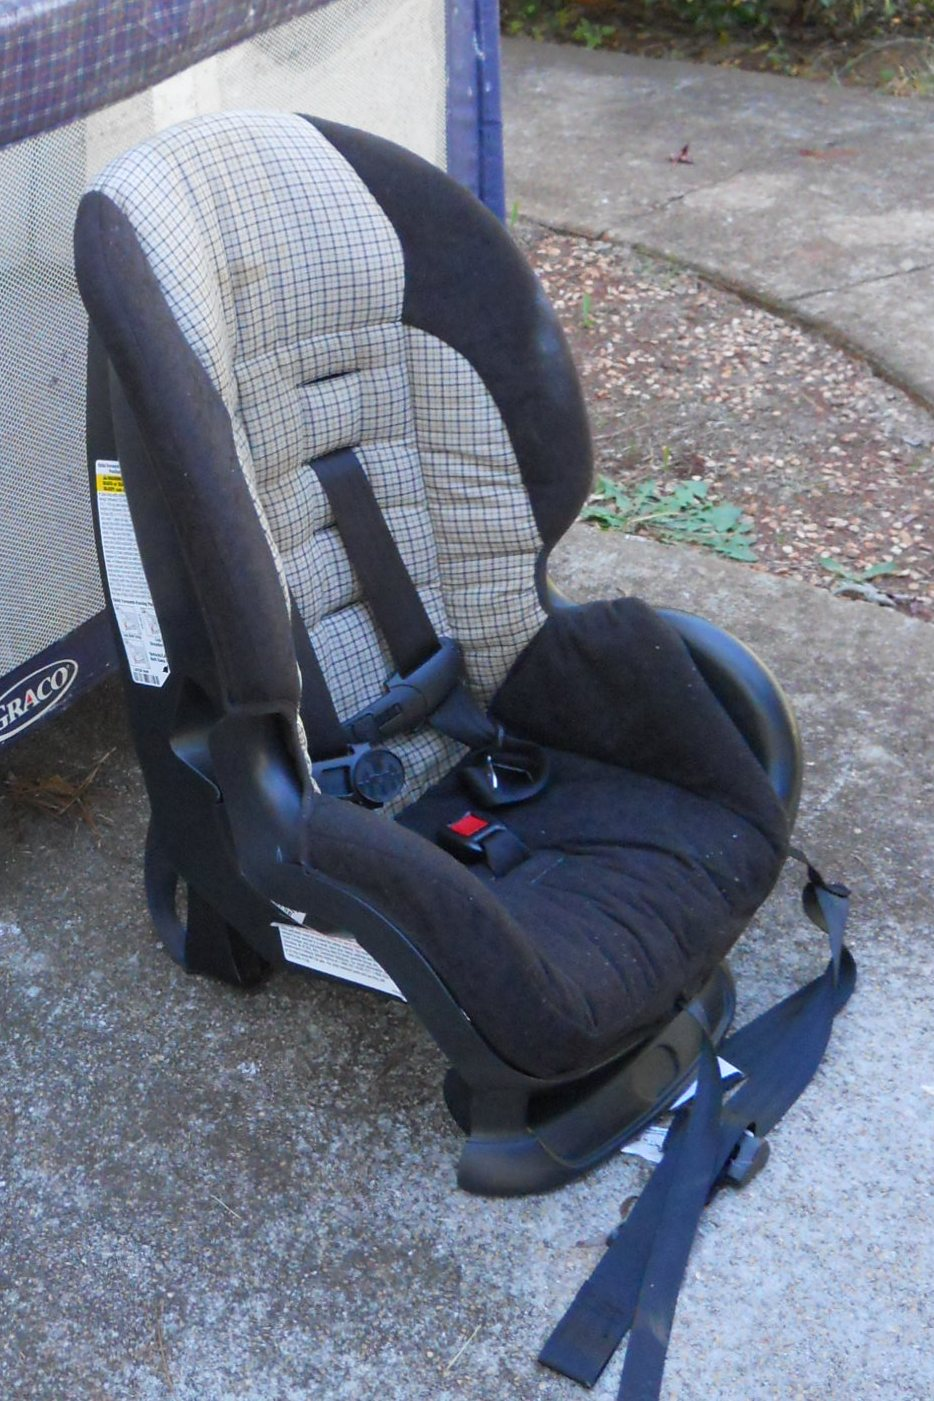 Car seat expiration date in Sydney